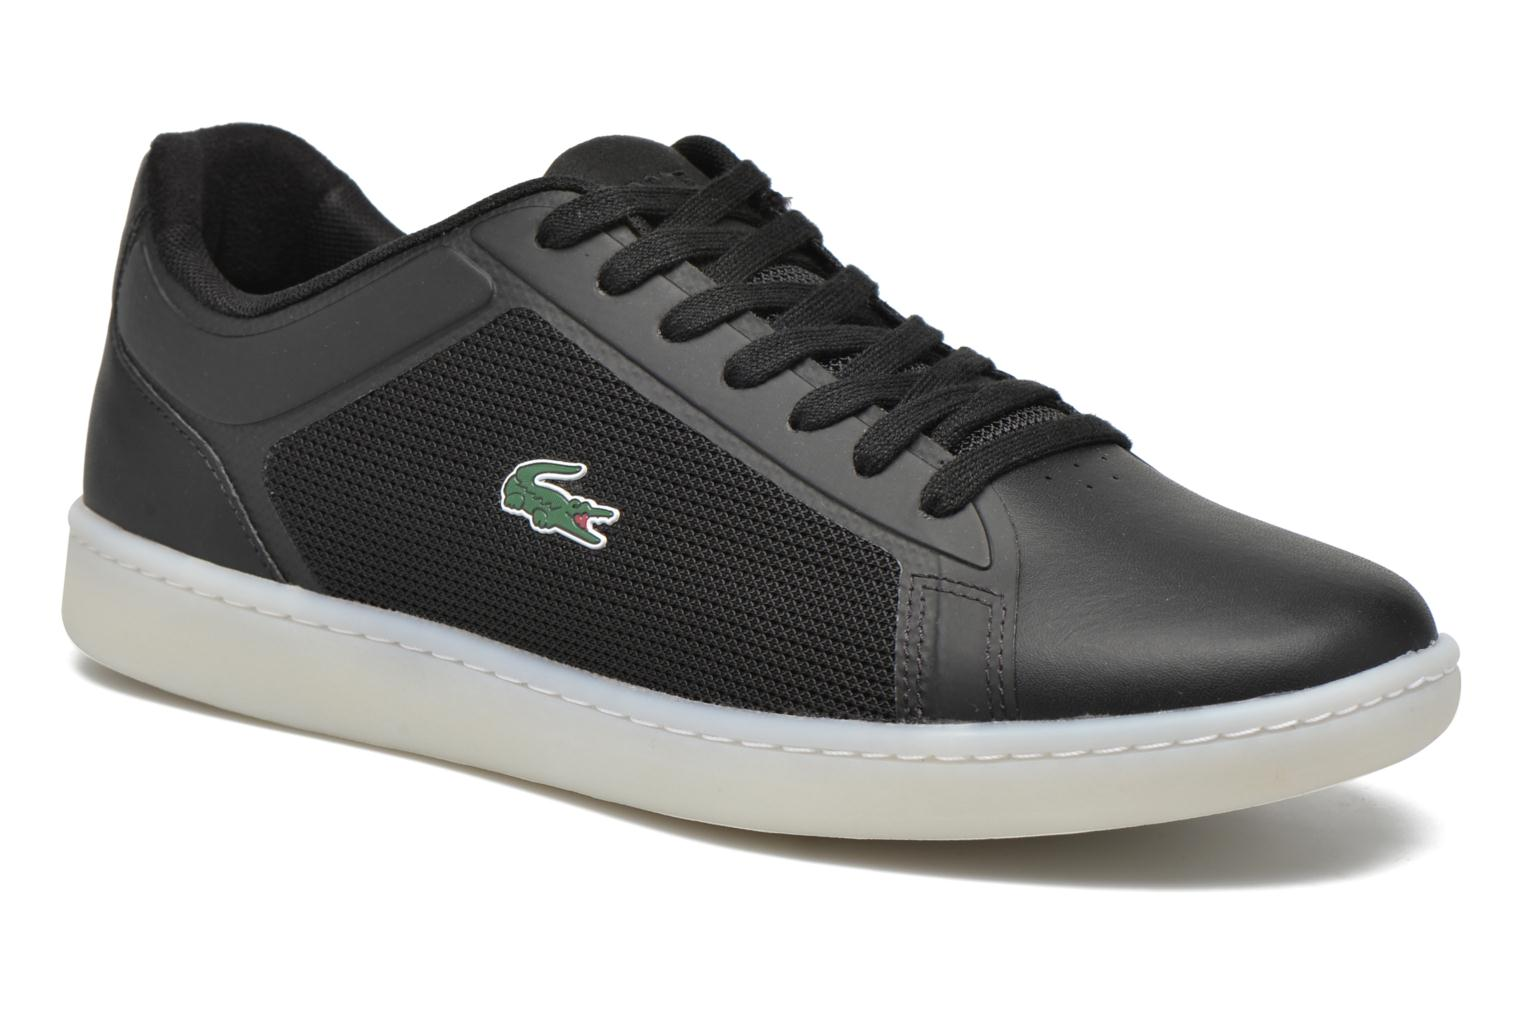 Sneakers Endliner 416 1 by Lacoste